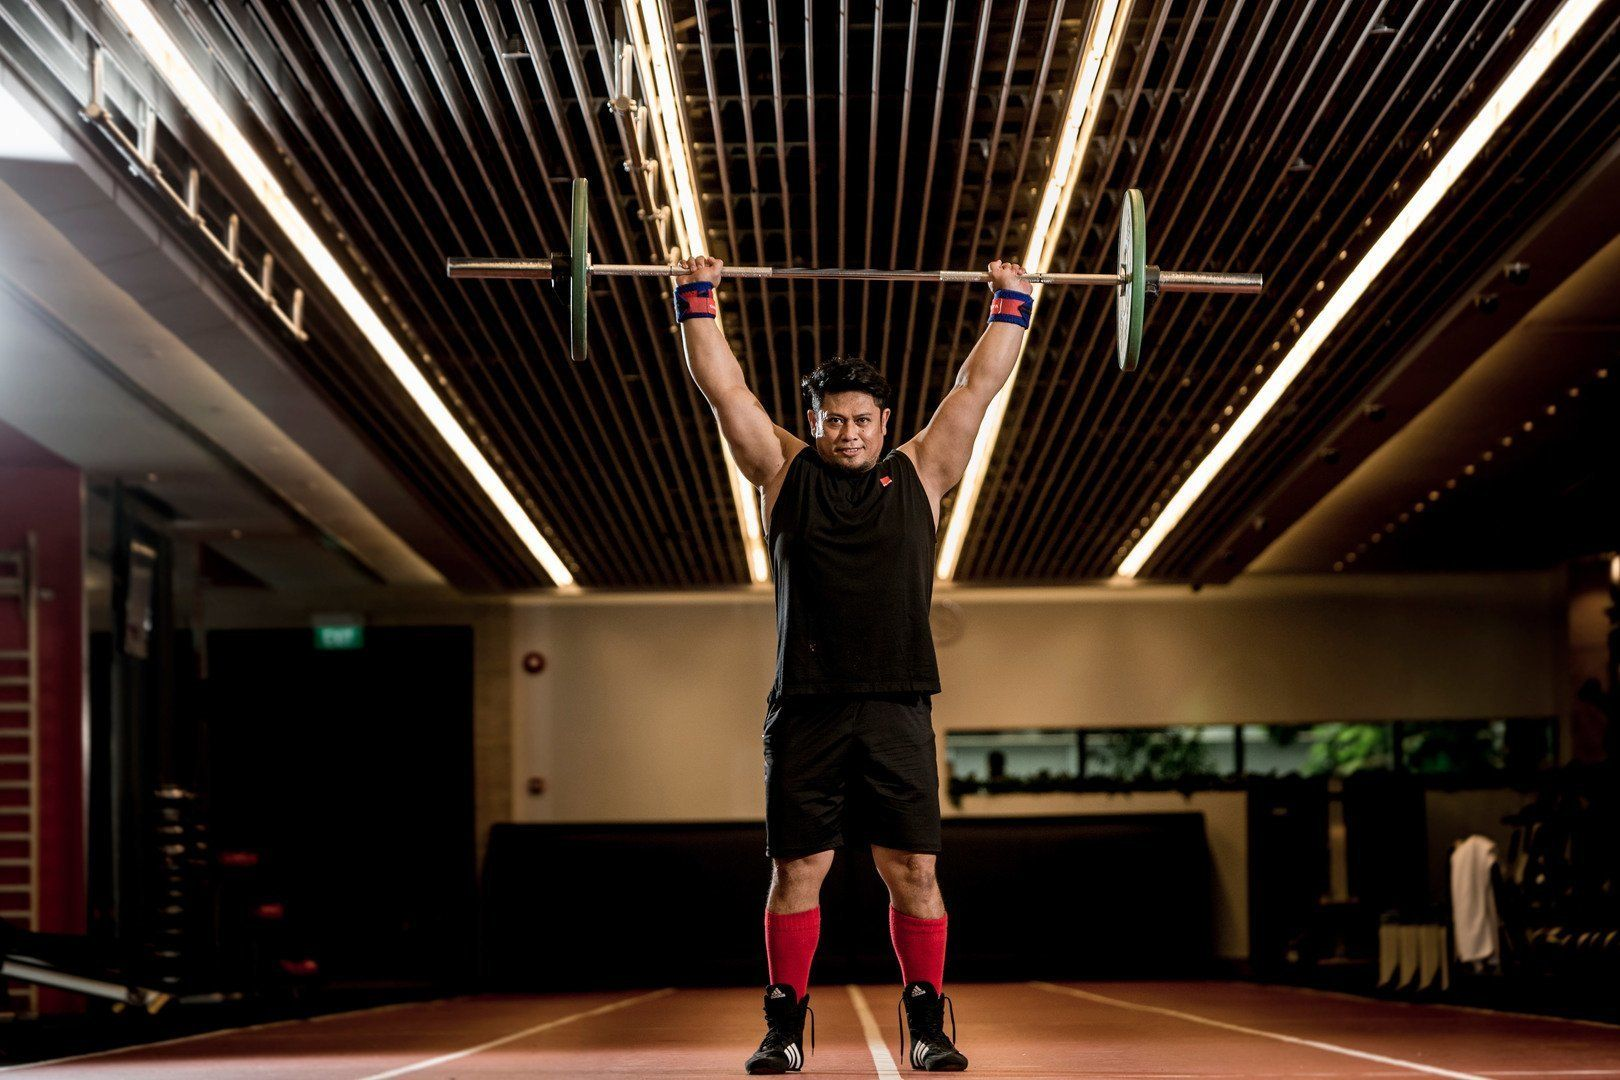 7 Essential Strength And Conditioning Exercises For Martial